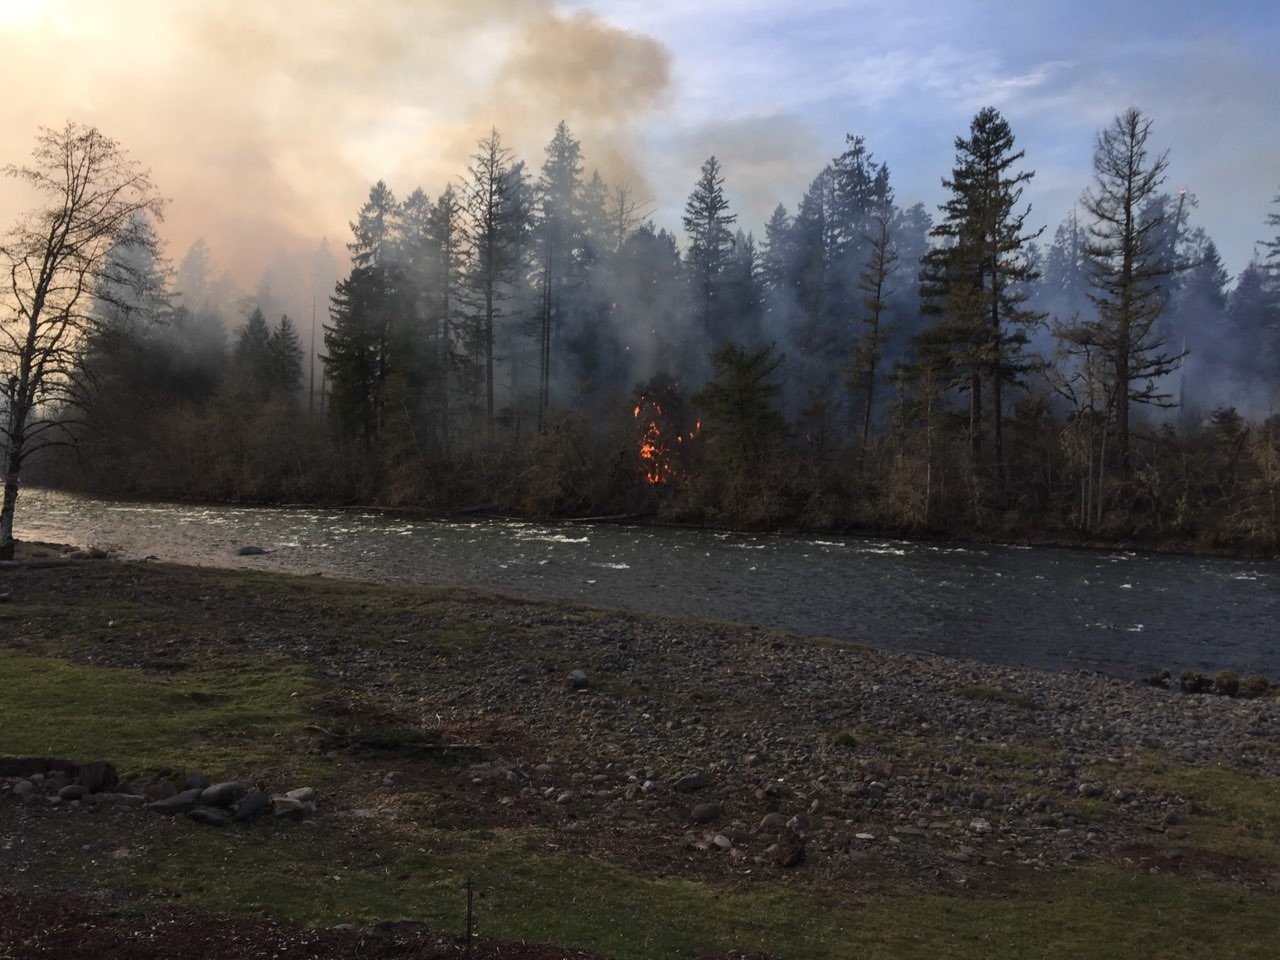 Fire burns along the bank of the Santiam River in the North Santiam State Recreational Area Tuesday, March 19, 2019. Photo courtesy Berva Bennett{ }